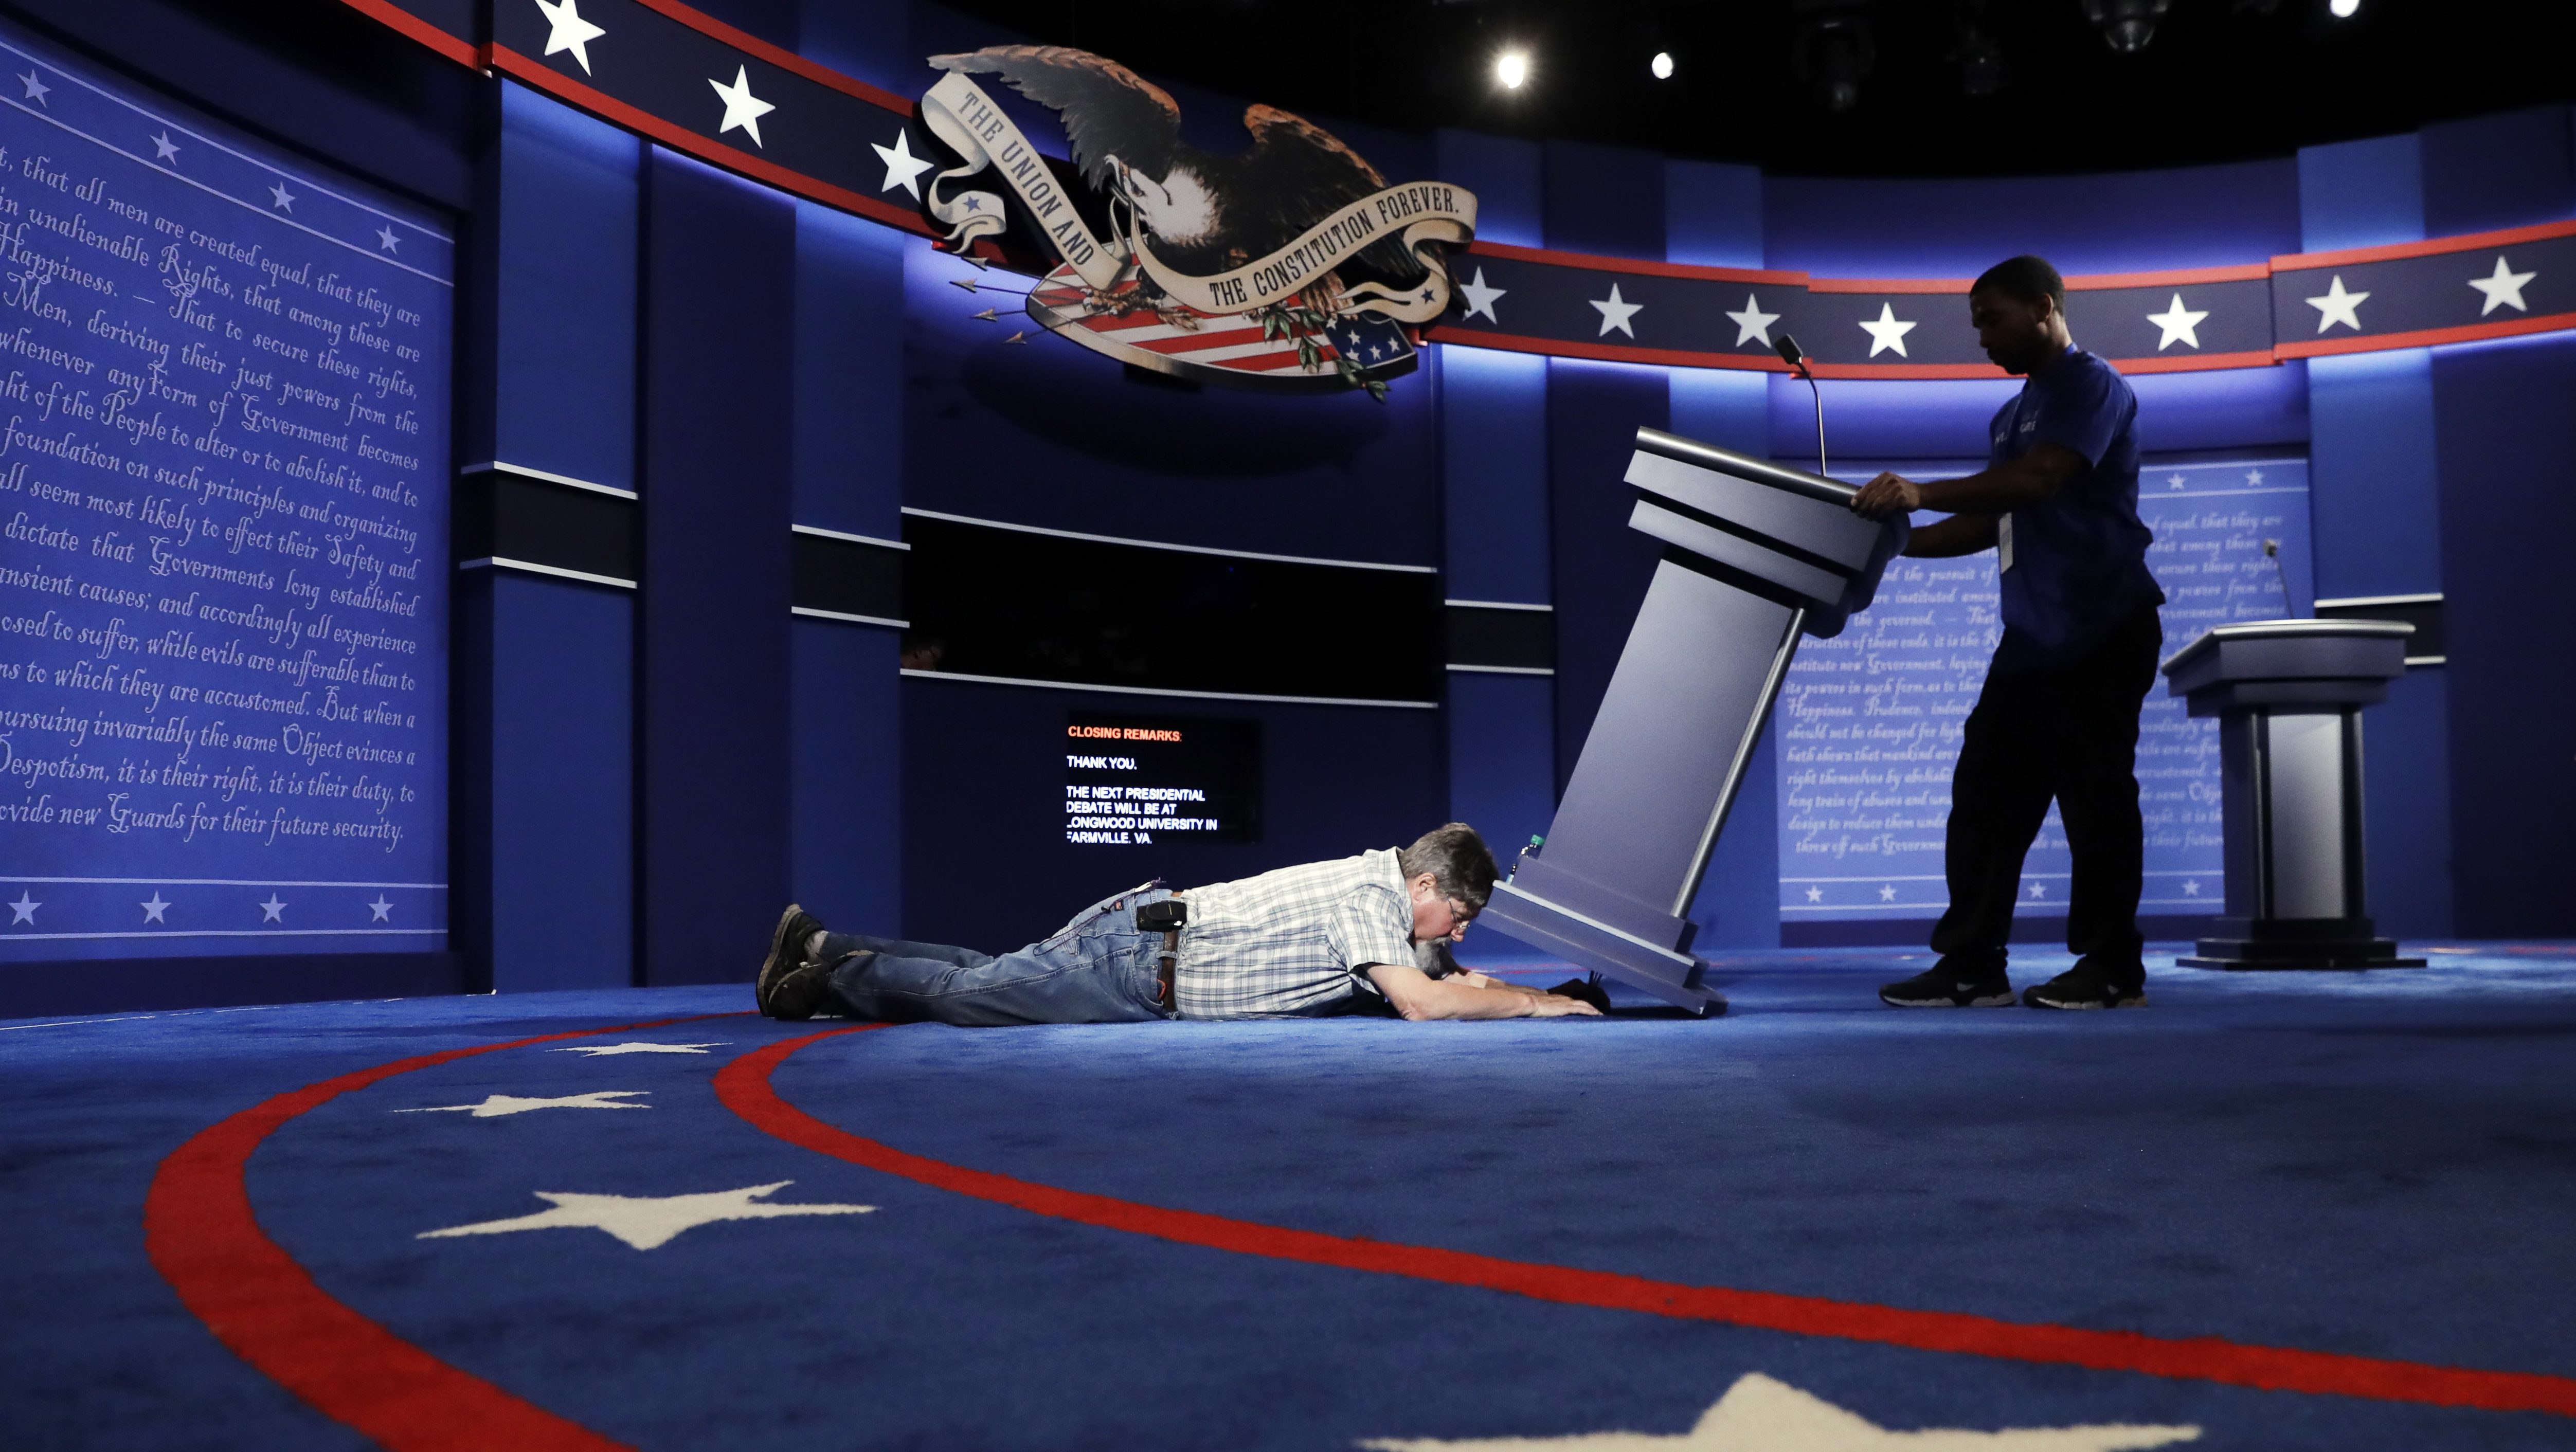 Technicians set up the stage for the presidential debate between Democratic presidential candidate Hillary Clinton and Republican presidential candidate Donald Trump at Hofstra University in Hempstead, N.Y., Sunday, Sept. 25, 2016. (AP Photo/Patrick Semansky)